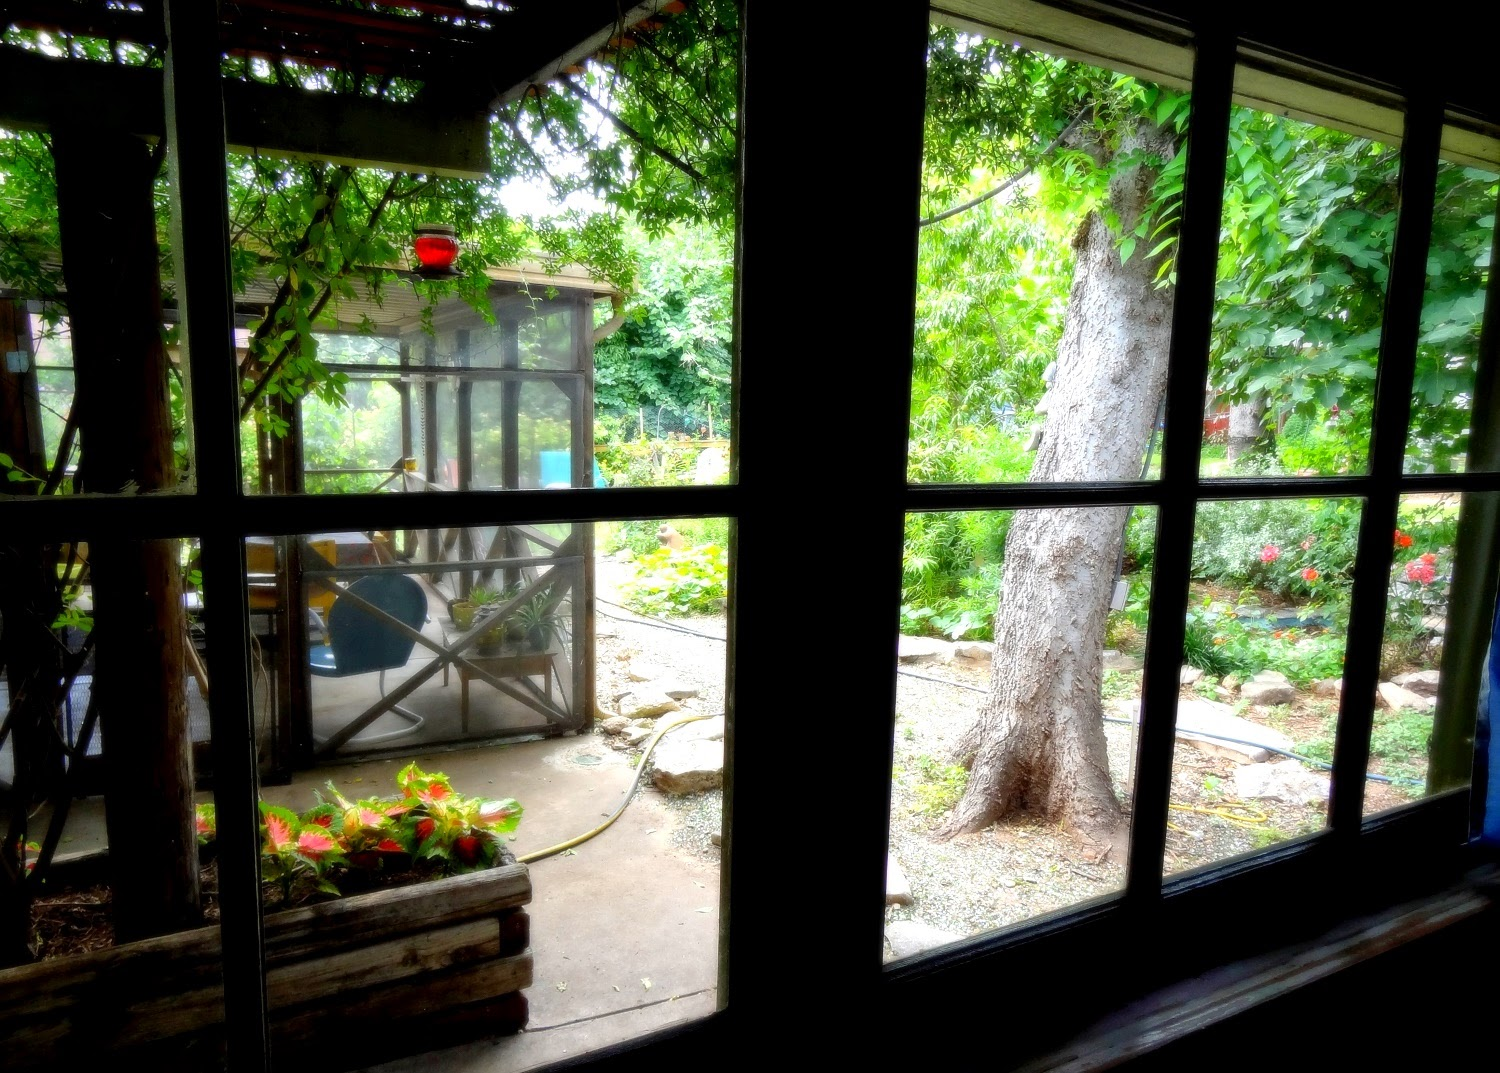 Window View Of Boho Garden